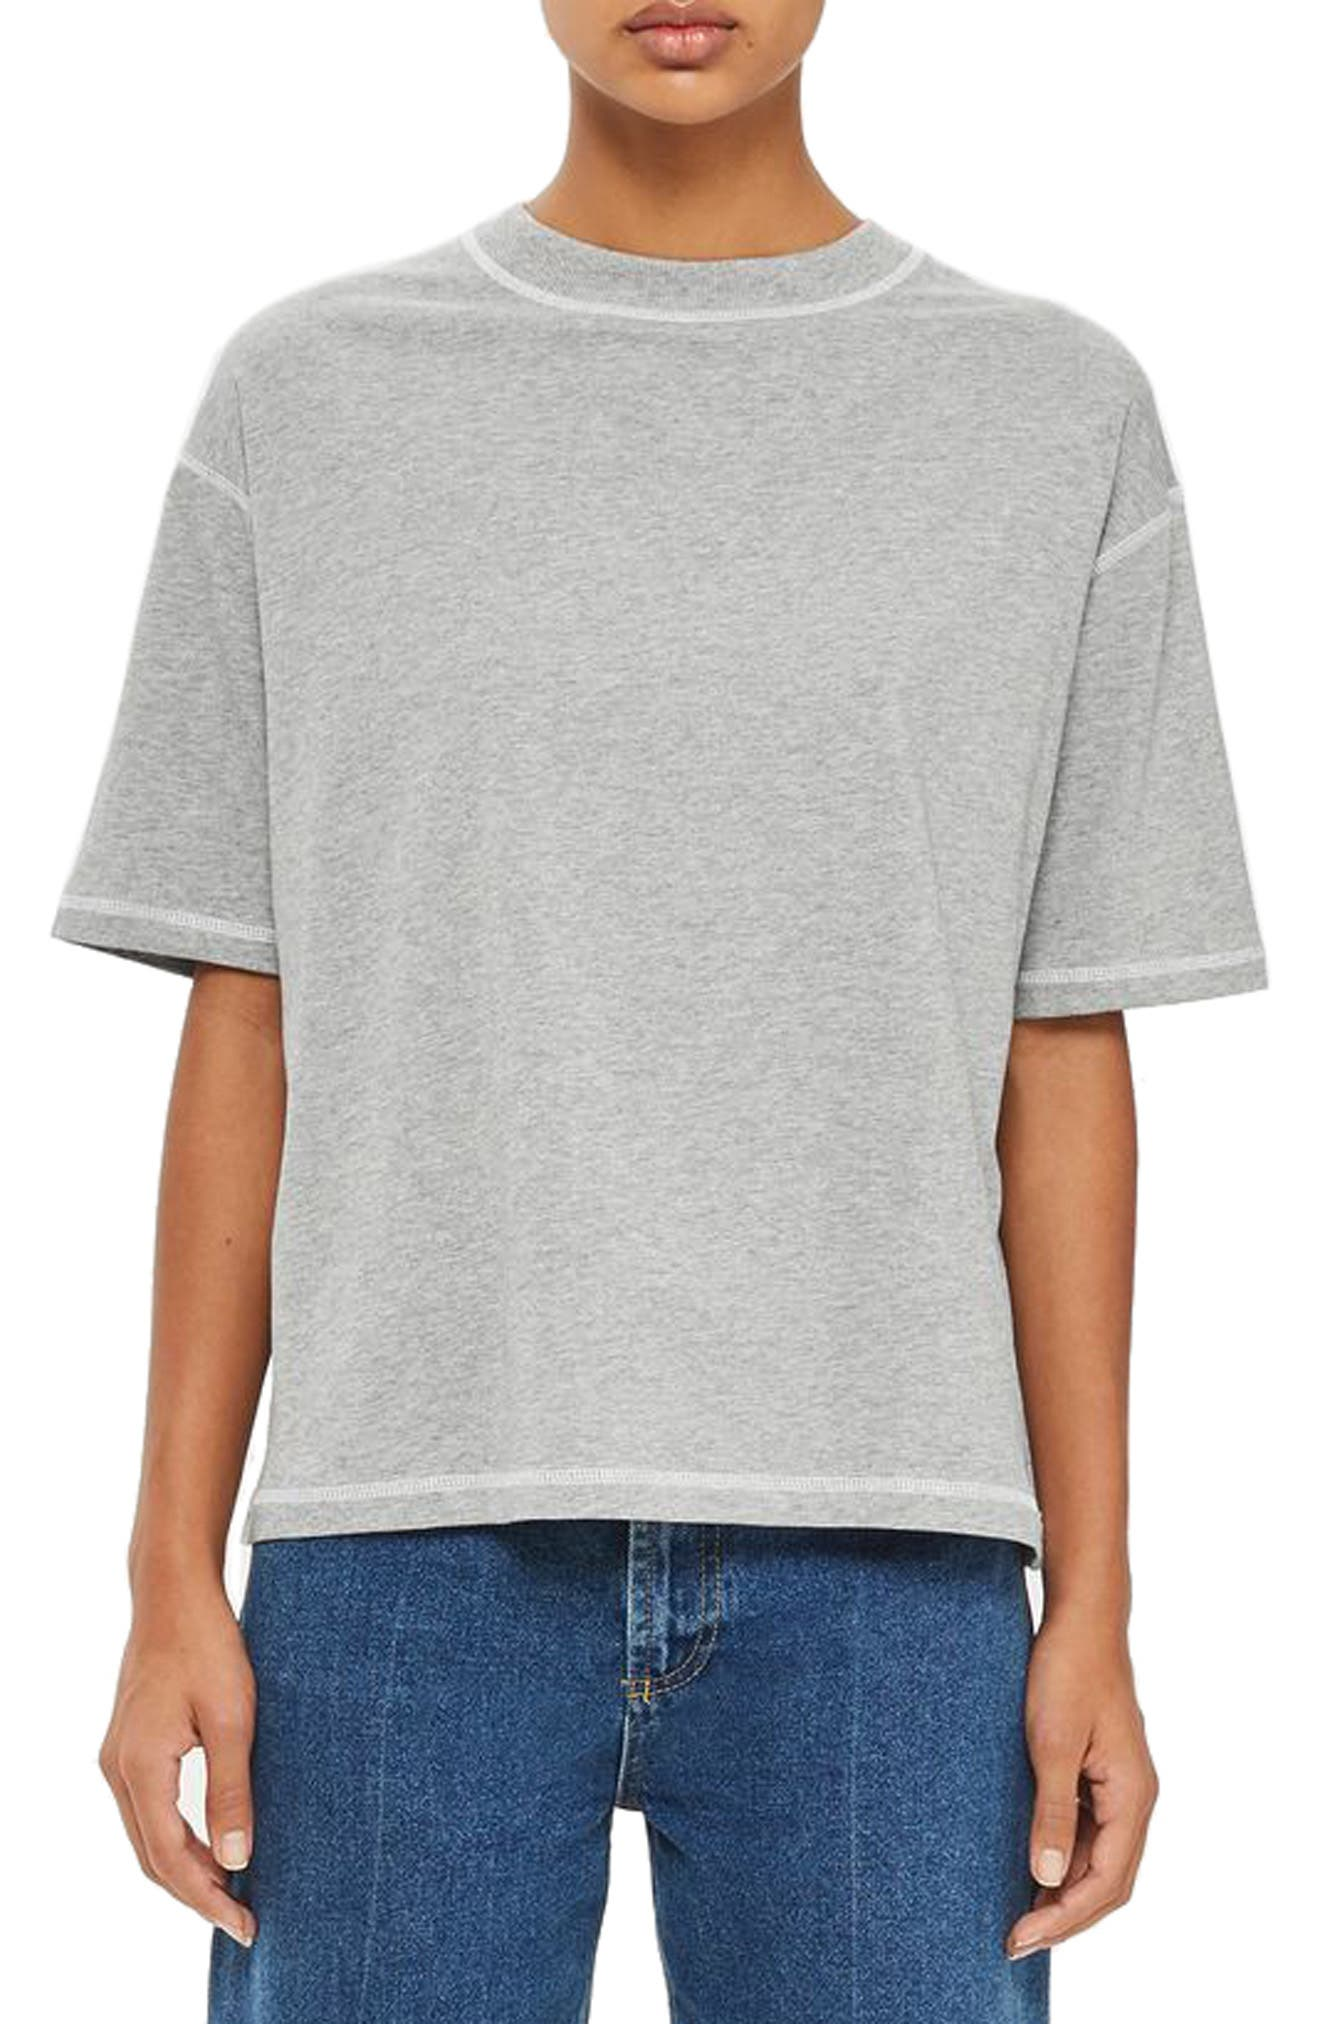 Topshop Boutique Contrast Stitch Boy Tee